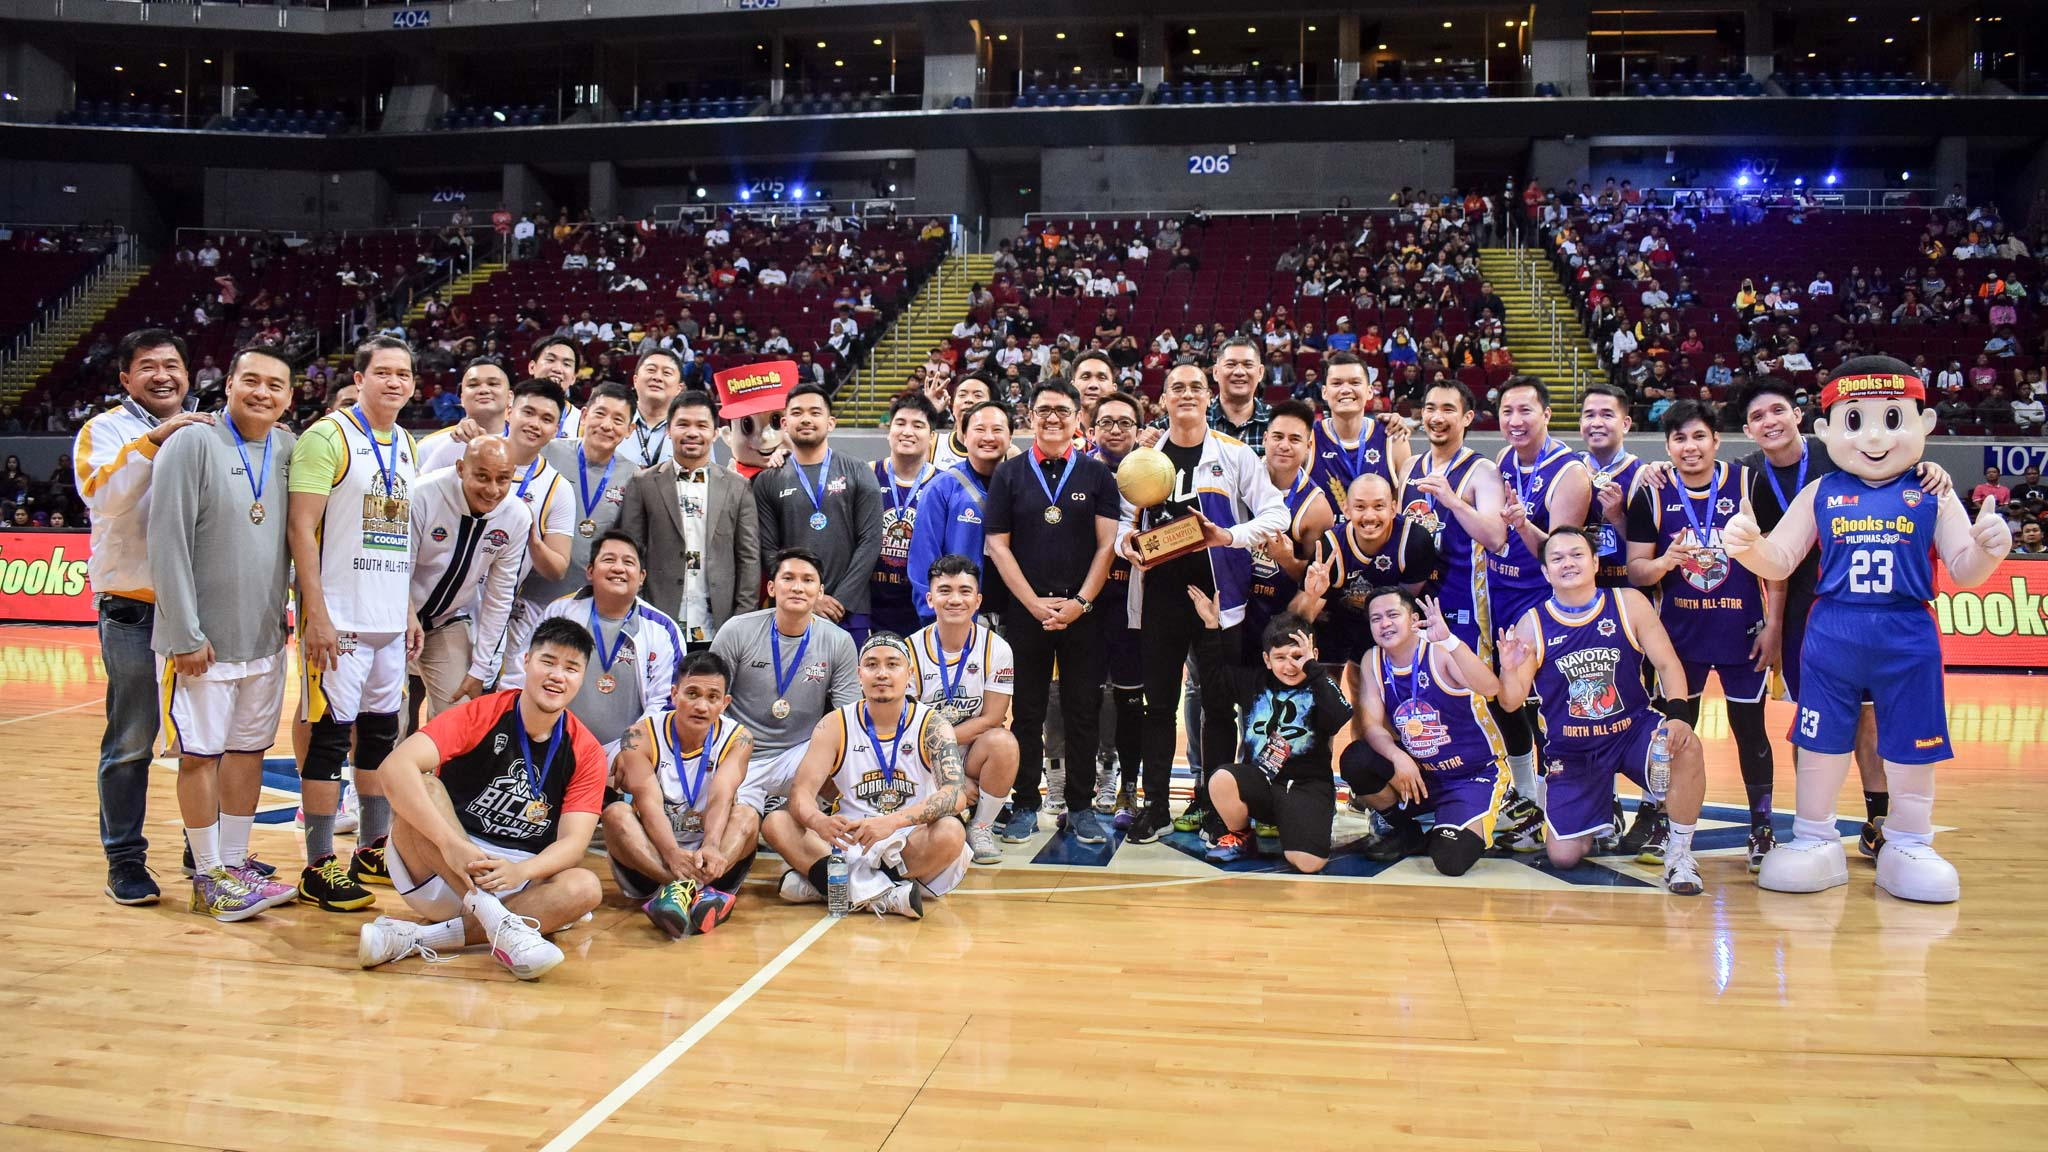 Tiebreaker Times Already a Kobe Bryant tribute, MPBL All-Star Game weirdly ends with 248 total Basketball MPBL News  Randy Alcantara Lester Alvarez Kobe Bryant Don Dulay 2020 MPBL All-Star Game 2019-20 MPBL Lakan Cup